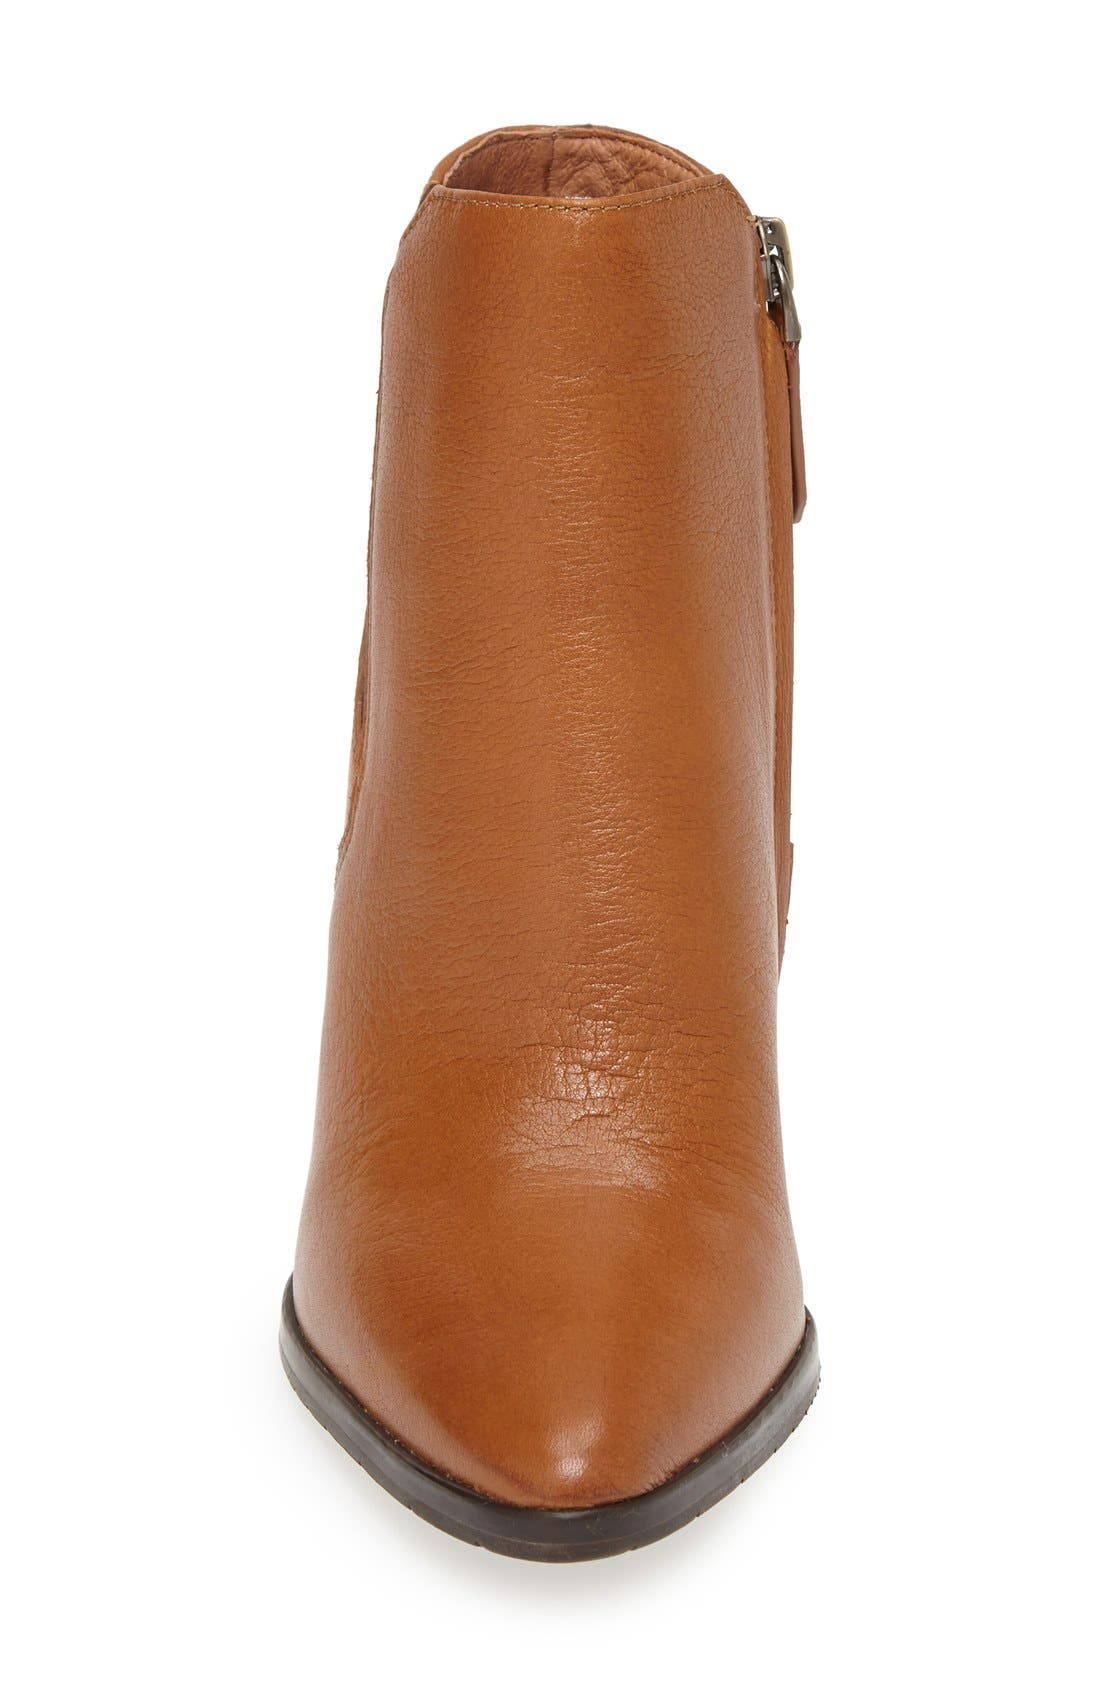 Alternate Image 3  - Kenneth Cole New York 'Sloane' Leather Wedge Bootie (Women)